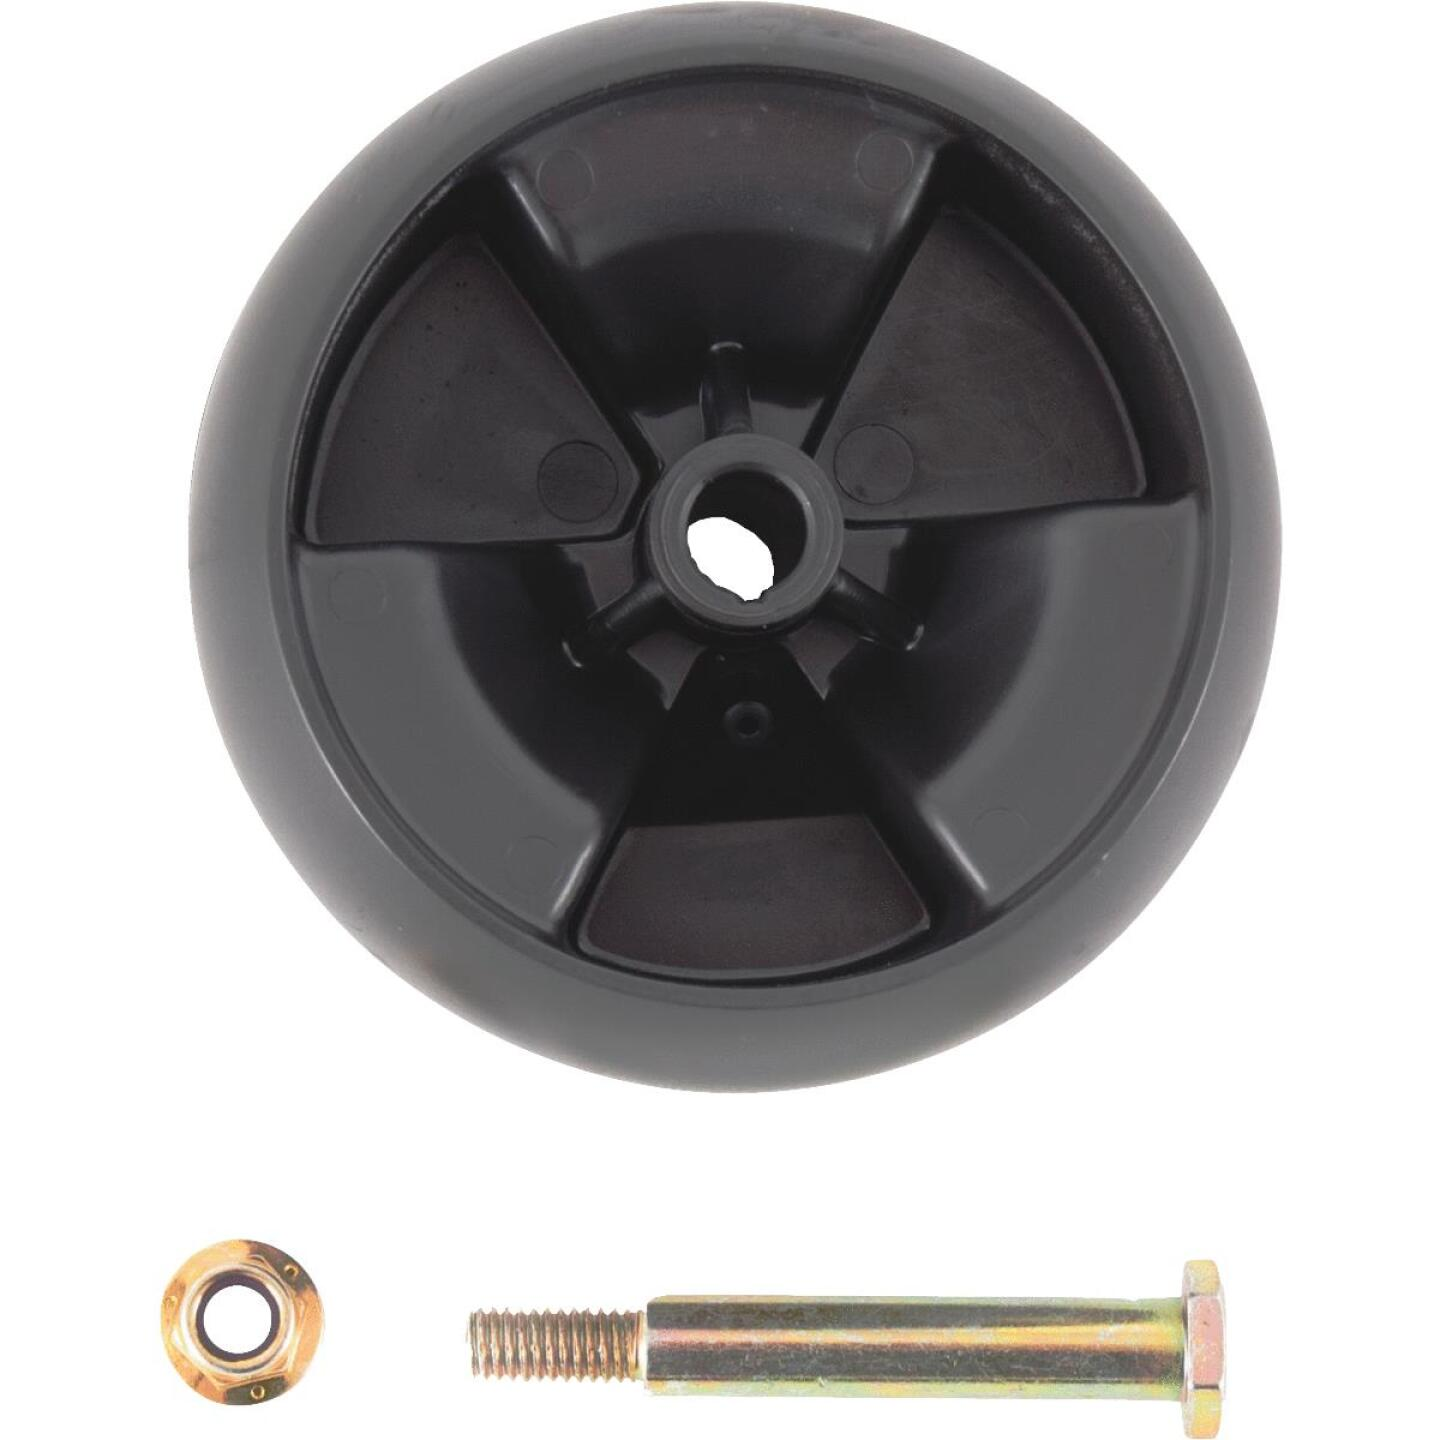 Arnold 5 In. Deck Mower Wheel Image 1